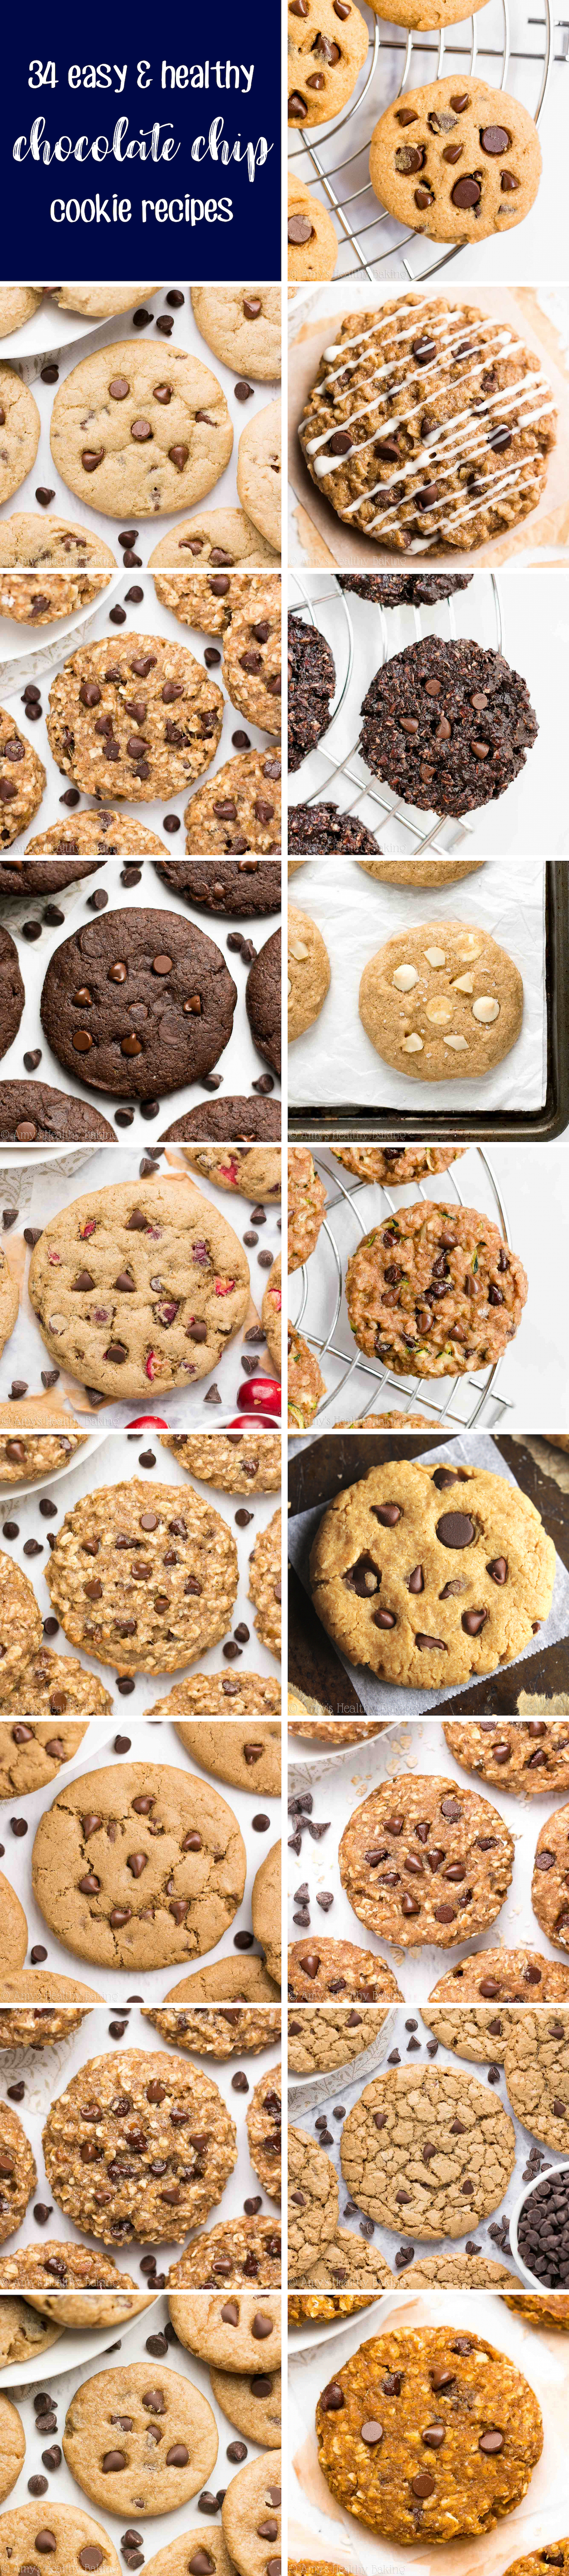 34 Easy & Healthy Chocolate Chip Cookie Recipes (Skinny & Weight Watchers Points)